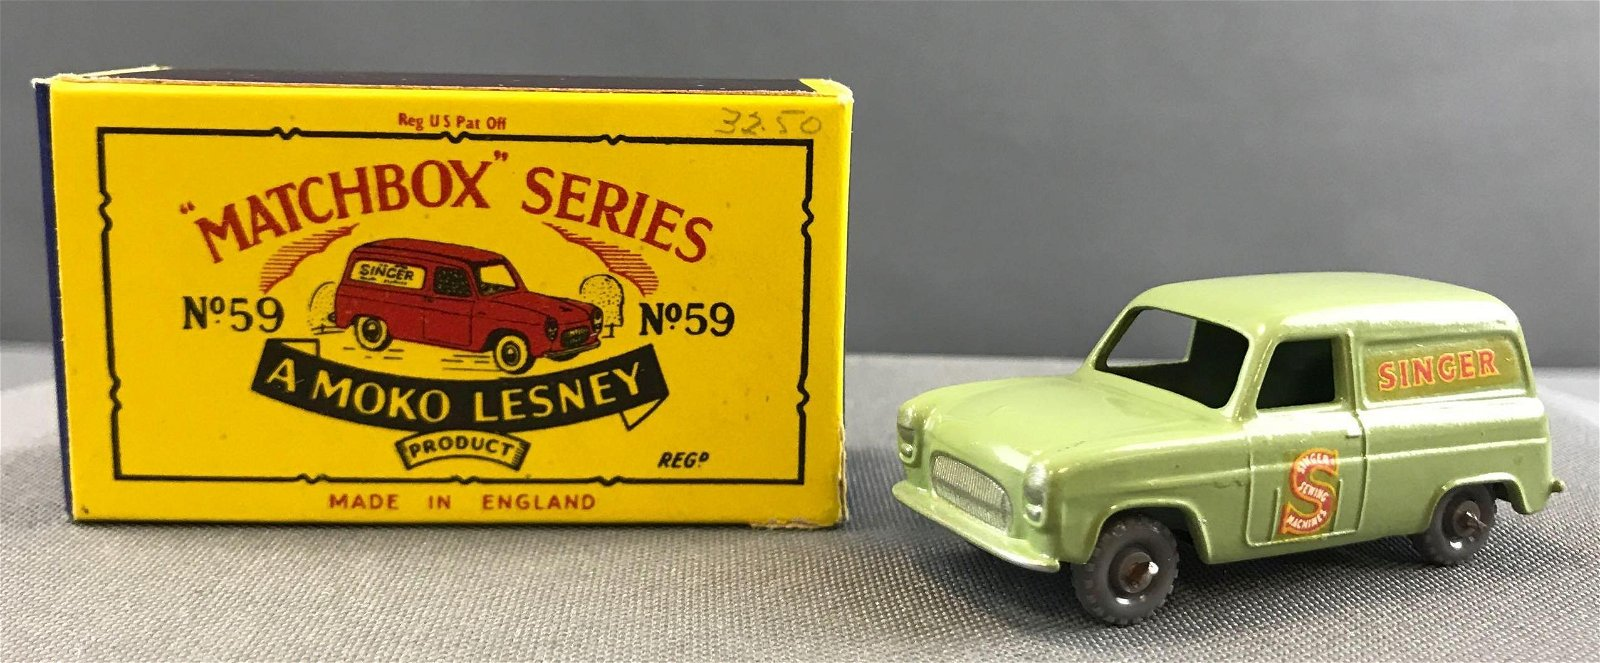 Matchbox No. 59 Ford Thames Van Die Cast Vehicle with